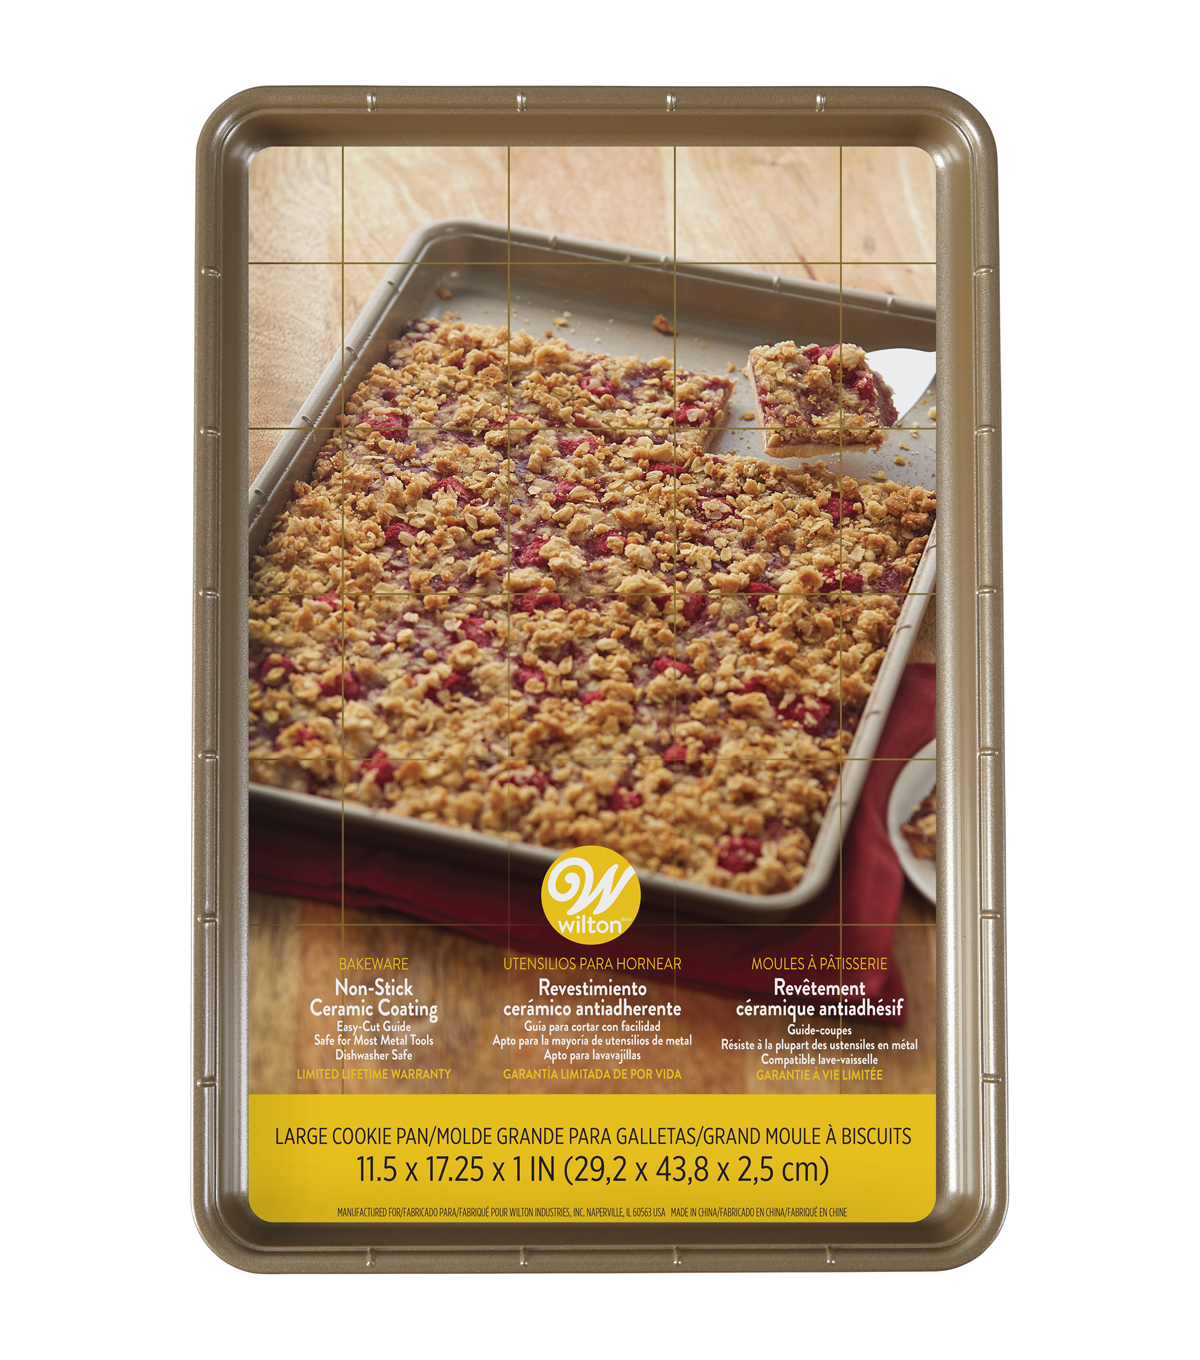 Wilton Large Non-stick Ceramic Coated Cookie Pan